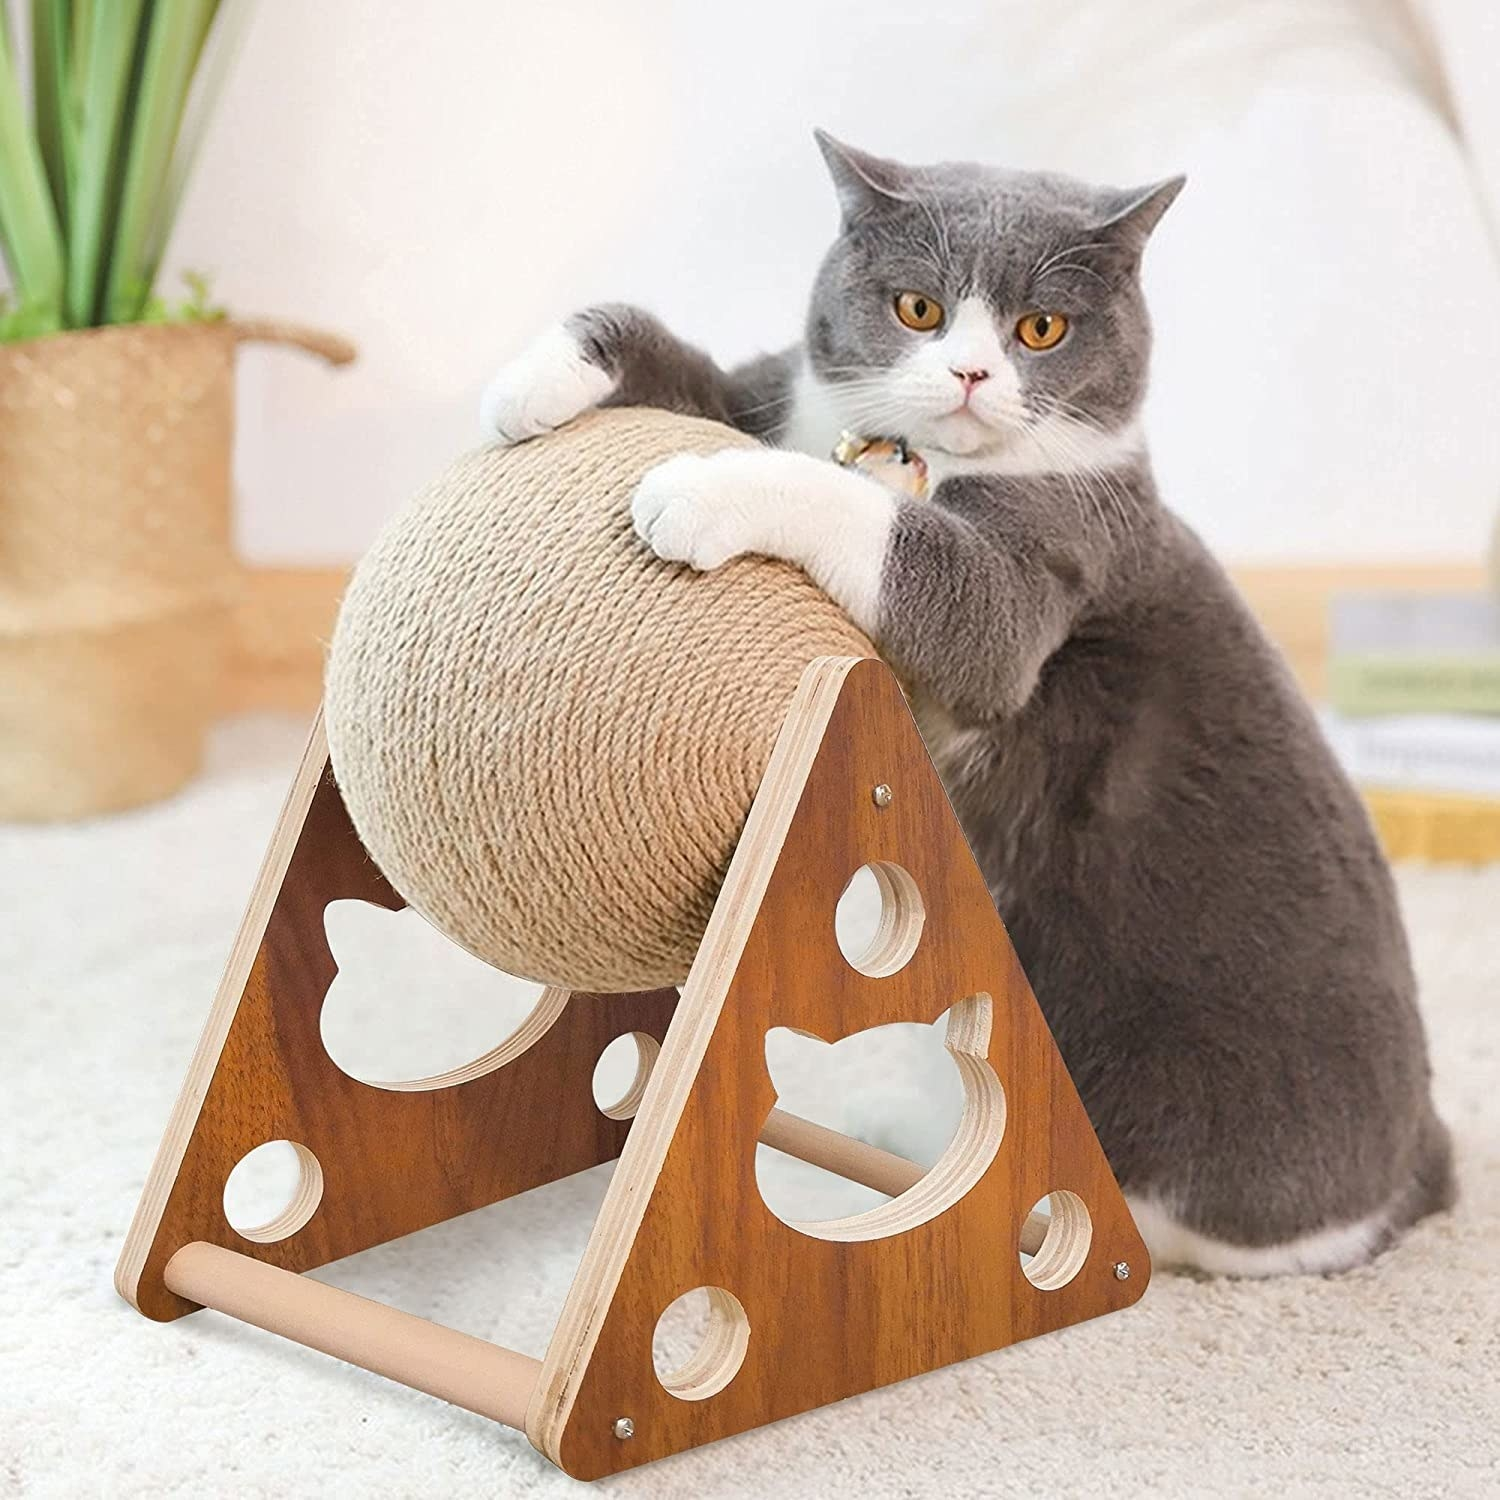 a cat playing with the sisal scratcher ball